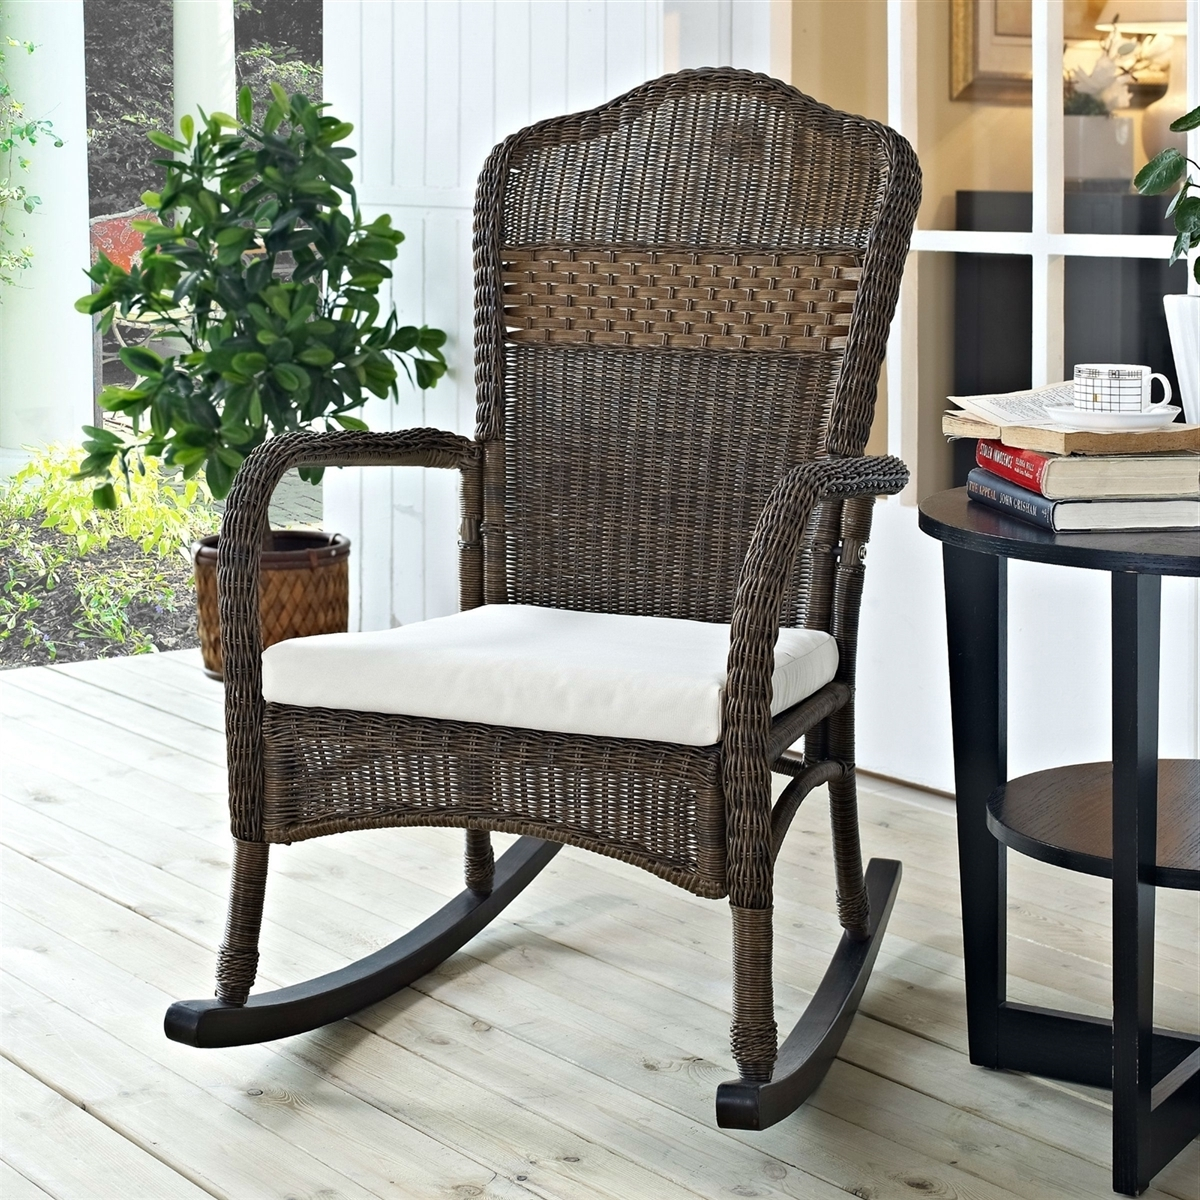 Trendy Wicker Patio Furniture Rocking Chair Mocha With Beige Cushion With Brown Wicker Patio Rocking Chairs (View 6 of 20)